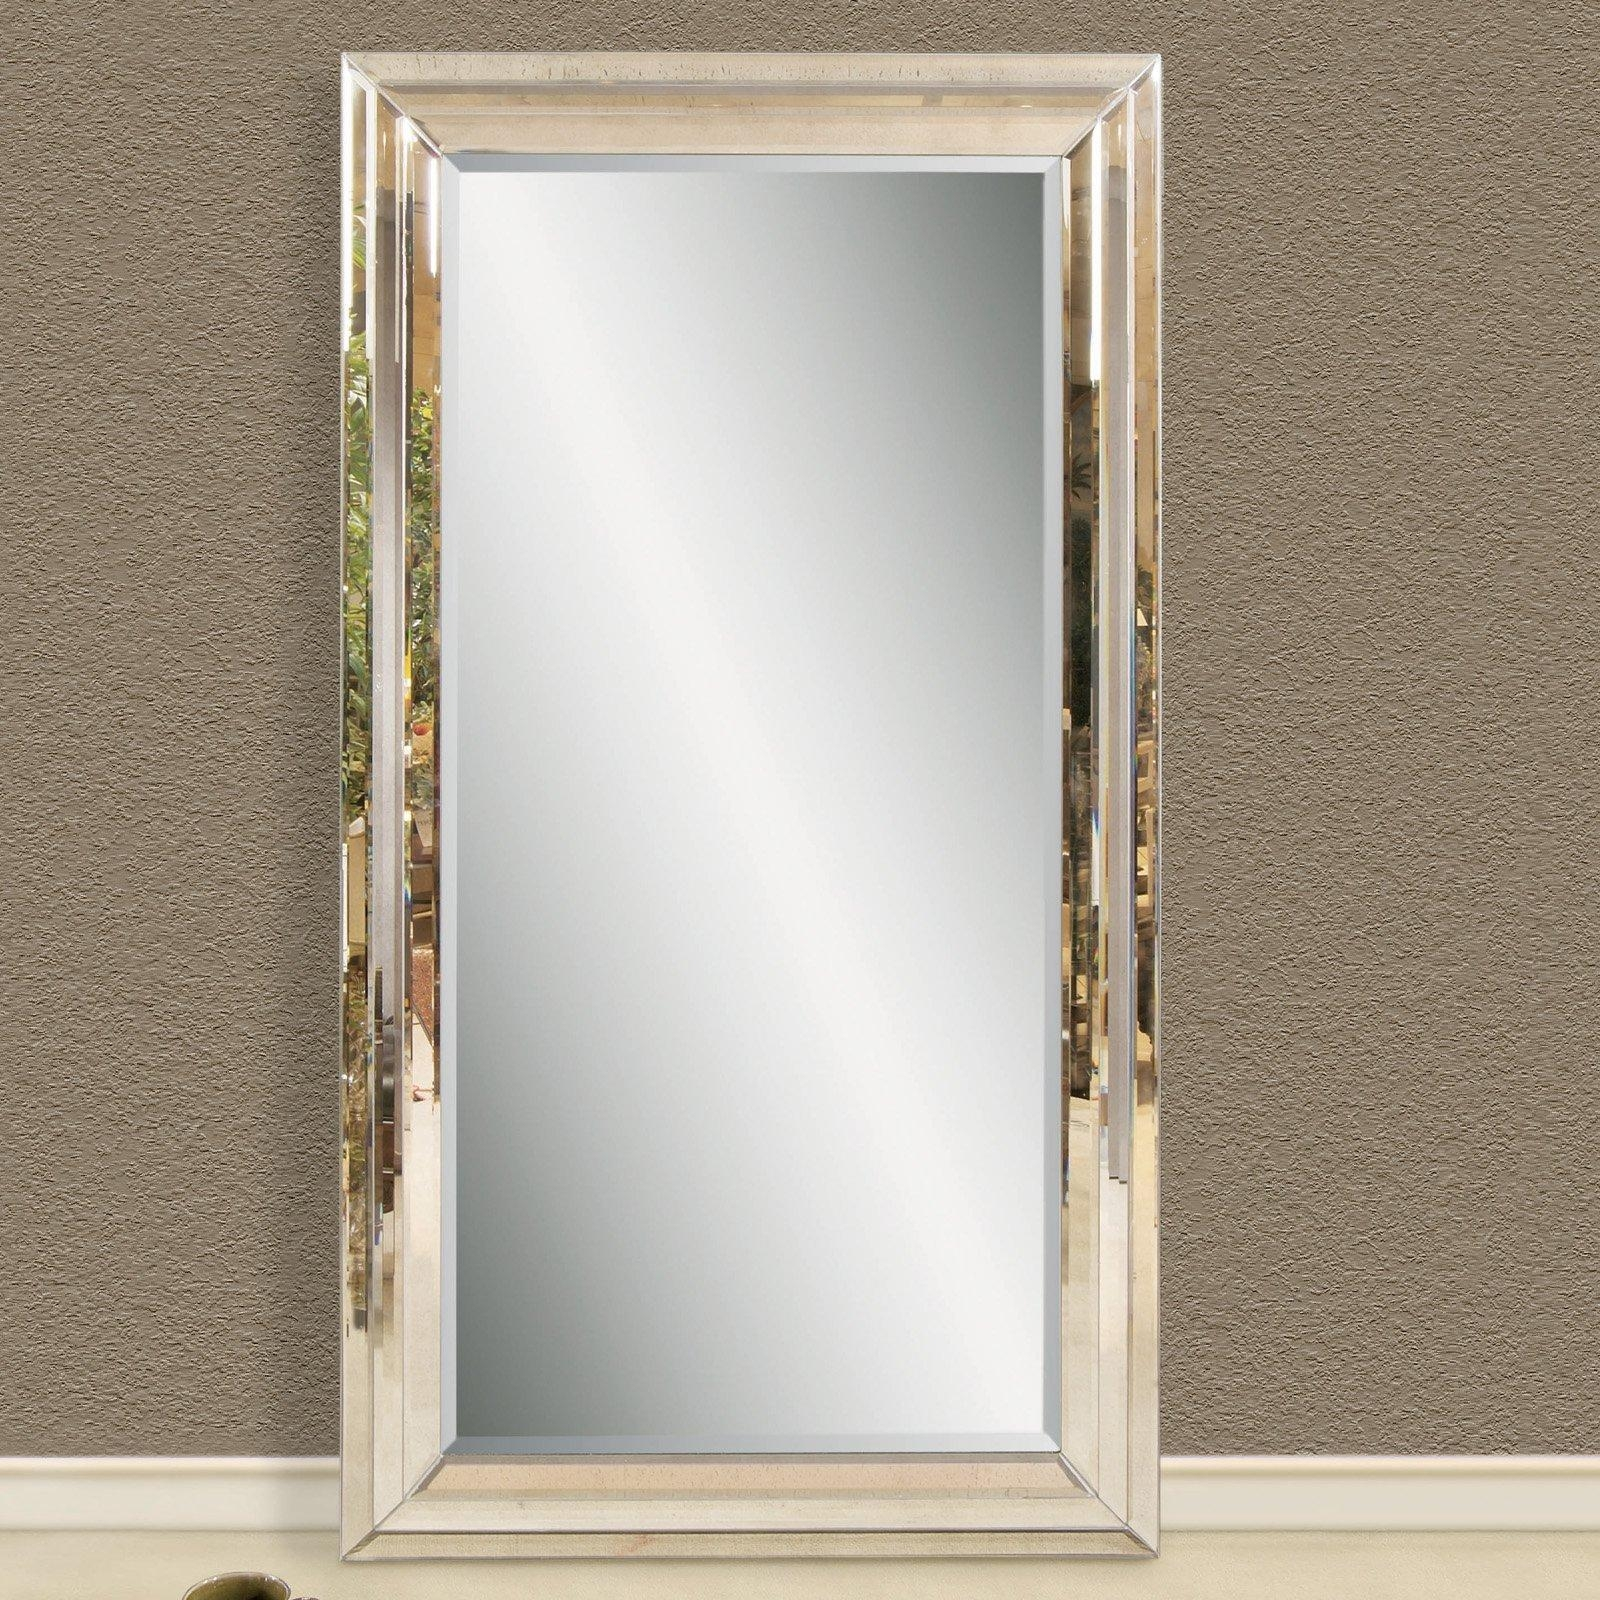 Large Full Length Mirror | Vanity Decoration Inside Full Length Large Mirror (Image 19 of 20)